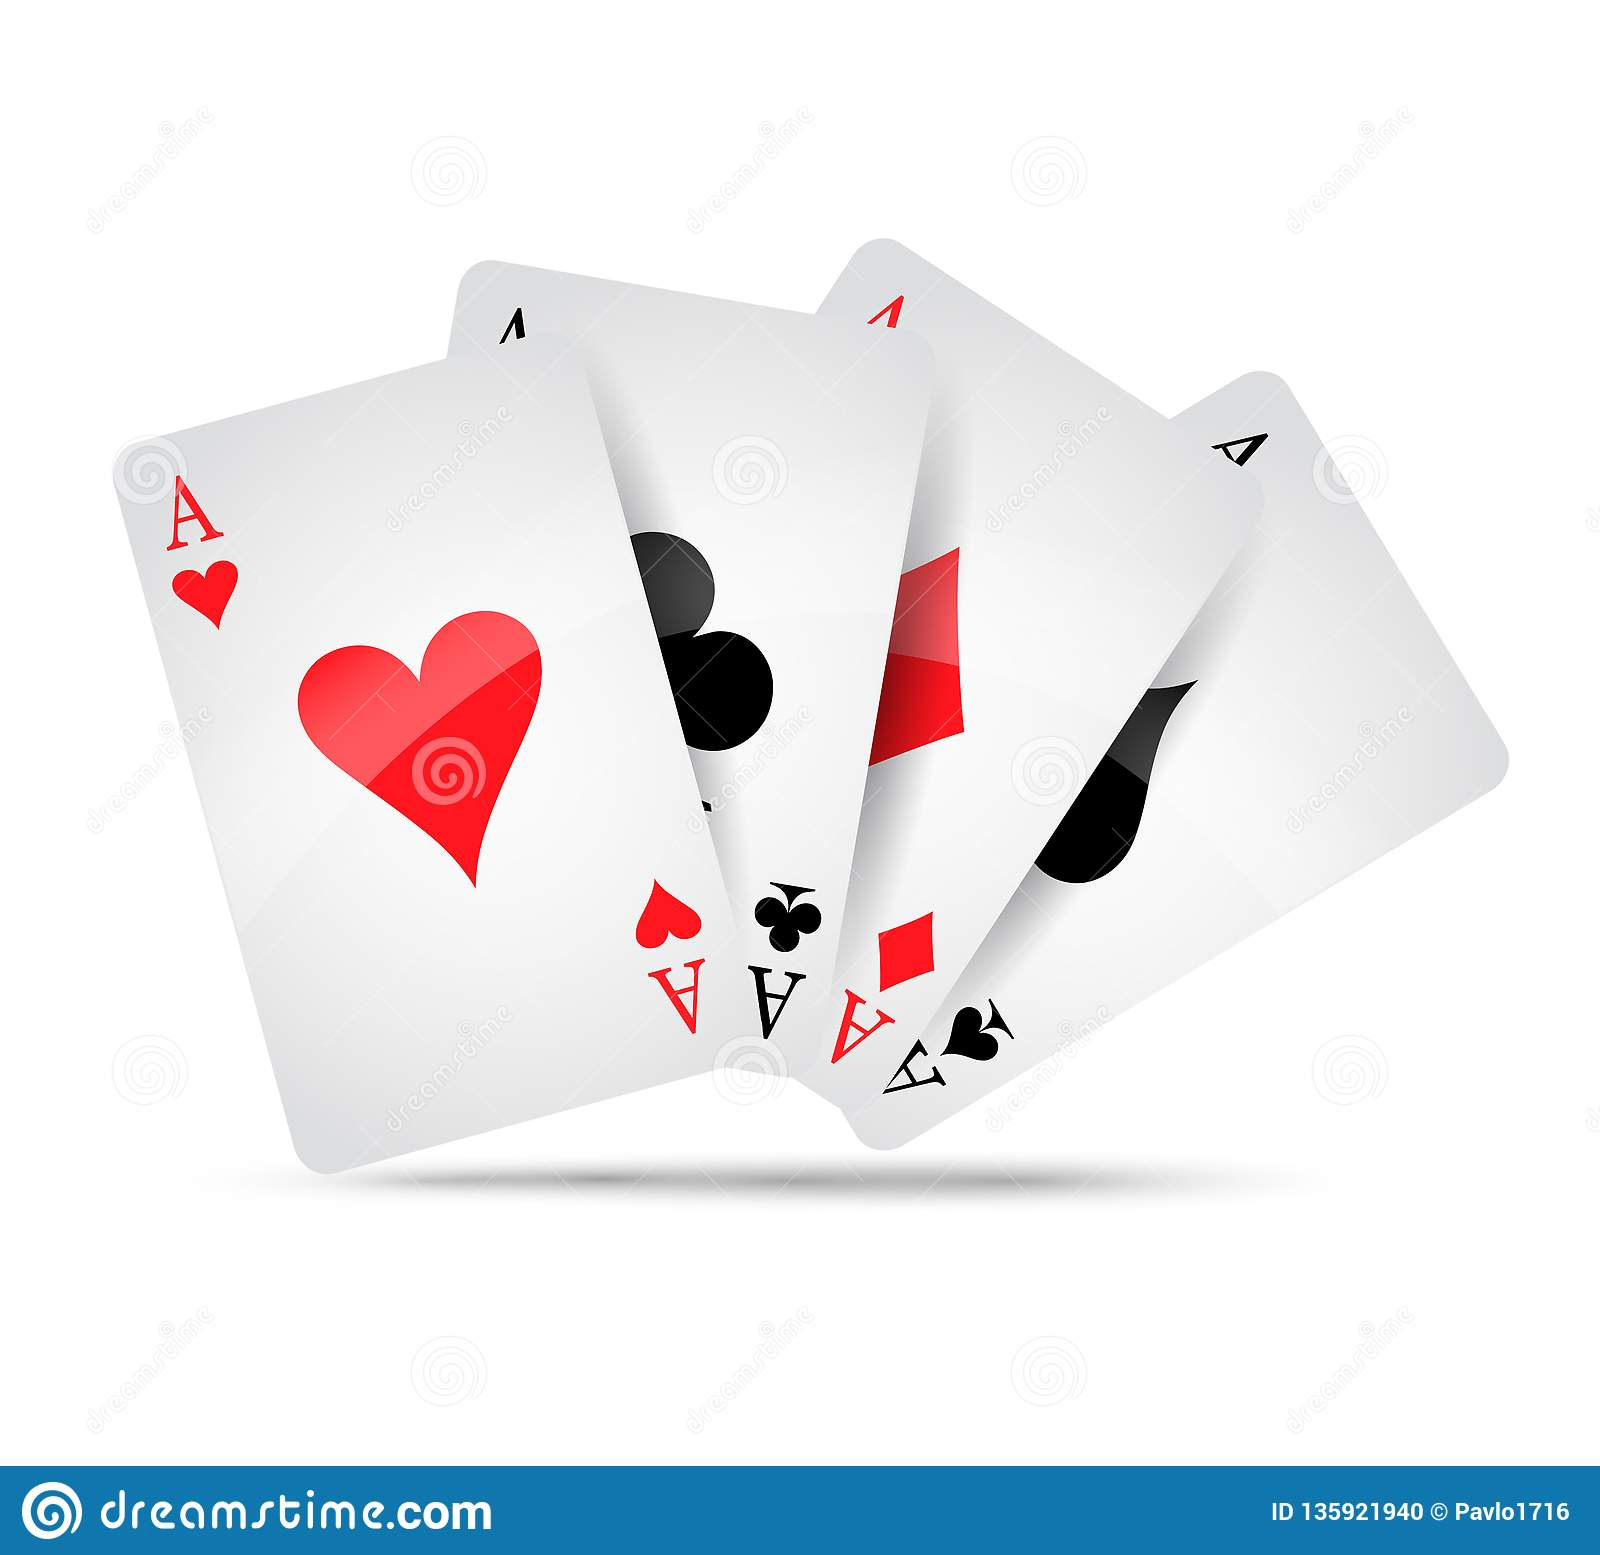 Ace card suit icon, playing cards symbols vector, set icon symbol suit, card suit icon sign, icon